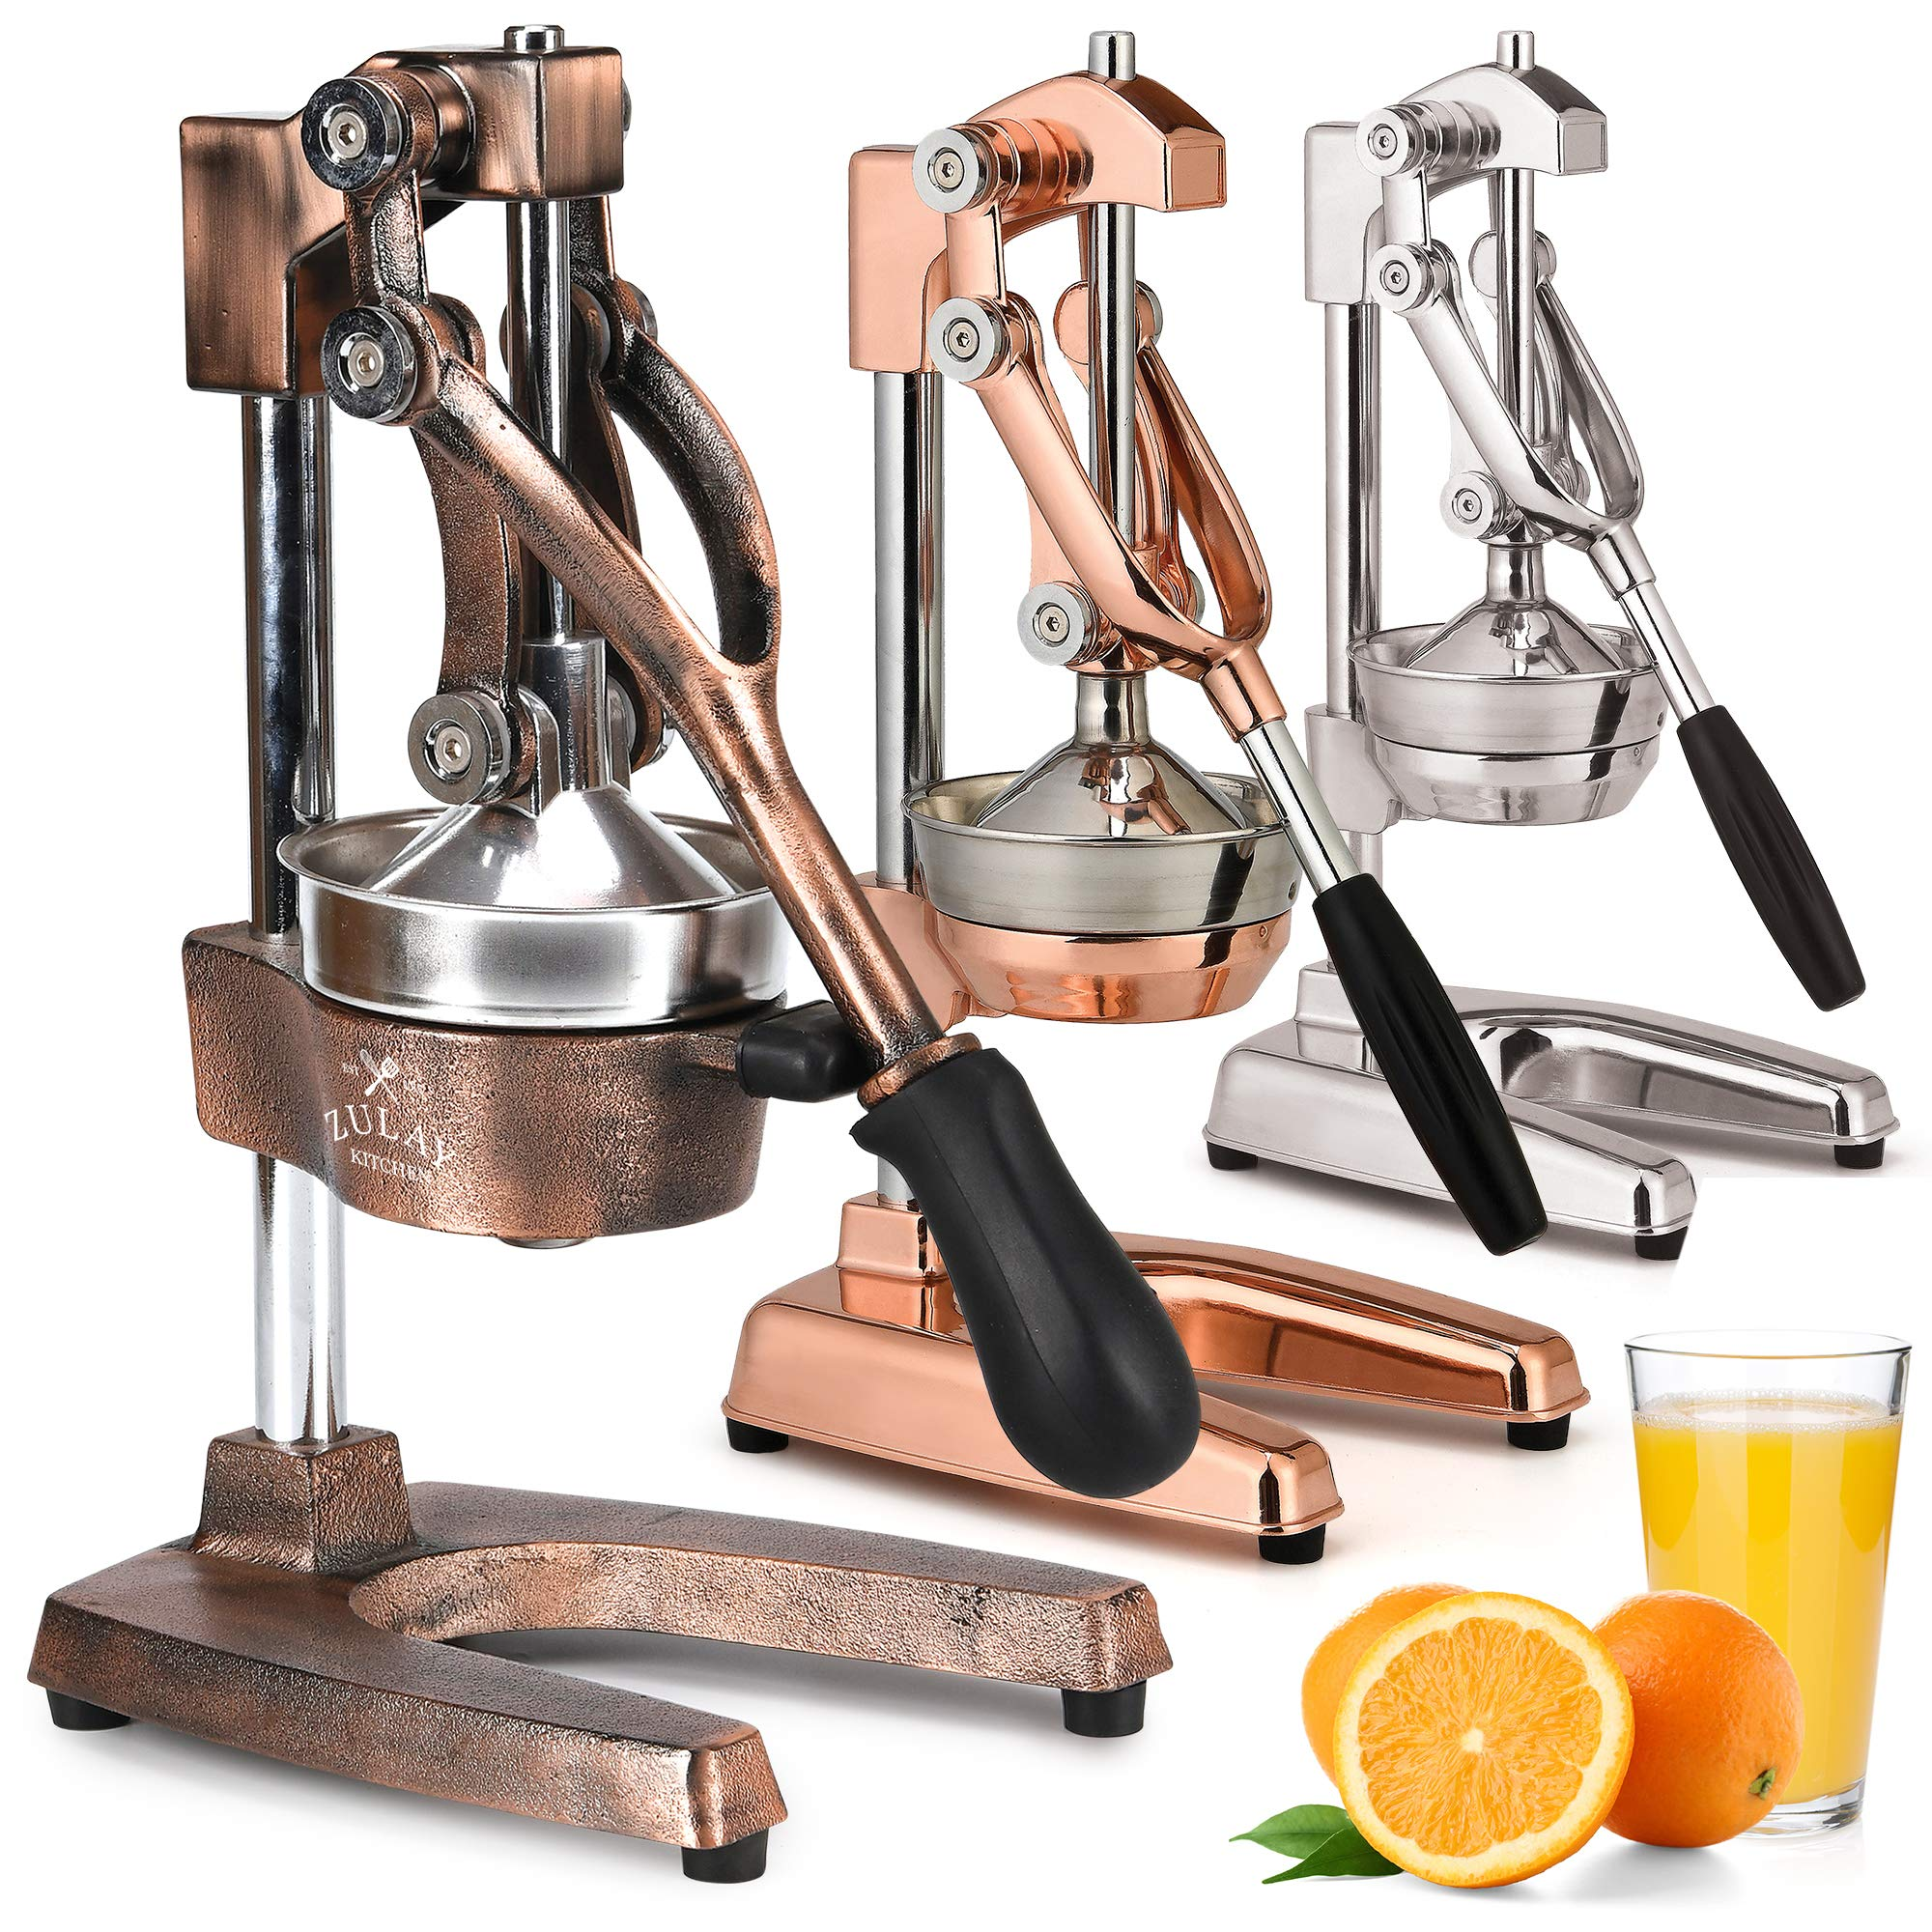 Zulay Professional Citrus Juicer - Manual Citrus Press and Orange Squeezer - Metal Lemon Squeezer - Premium Quality Heavy Duty Manual Orange Juicer and Lime Squeezer Press Stand, Copper Finish by Zulay Kitchen